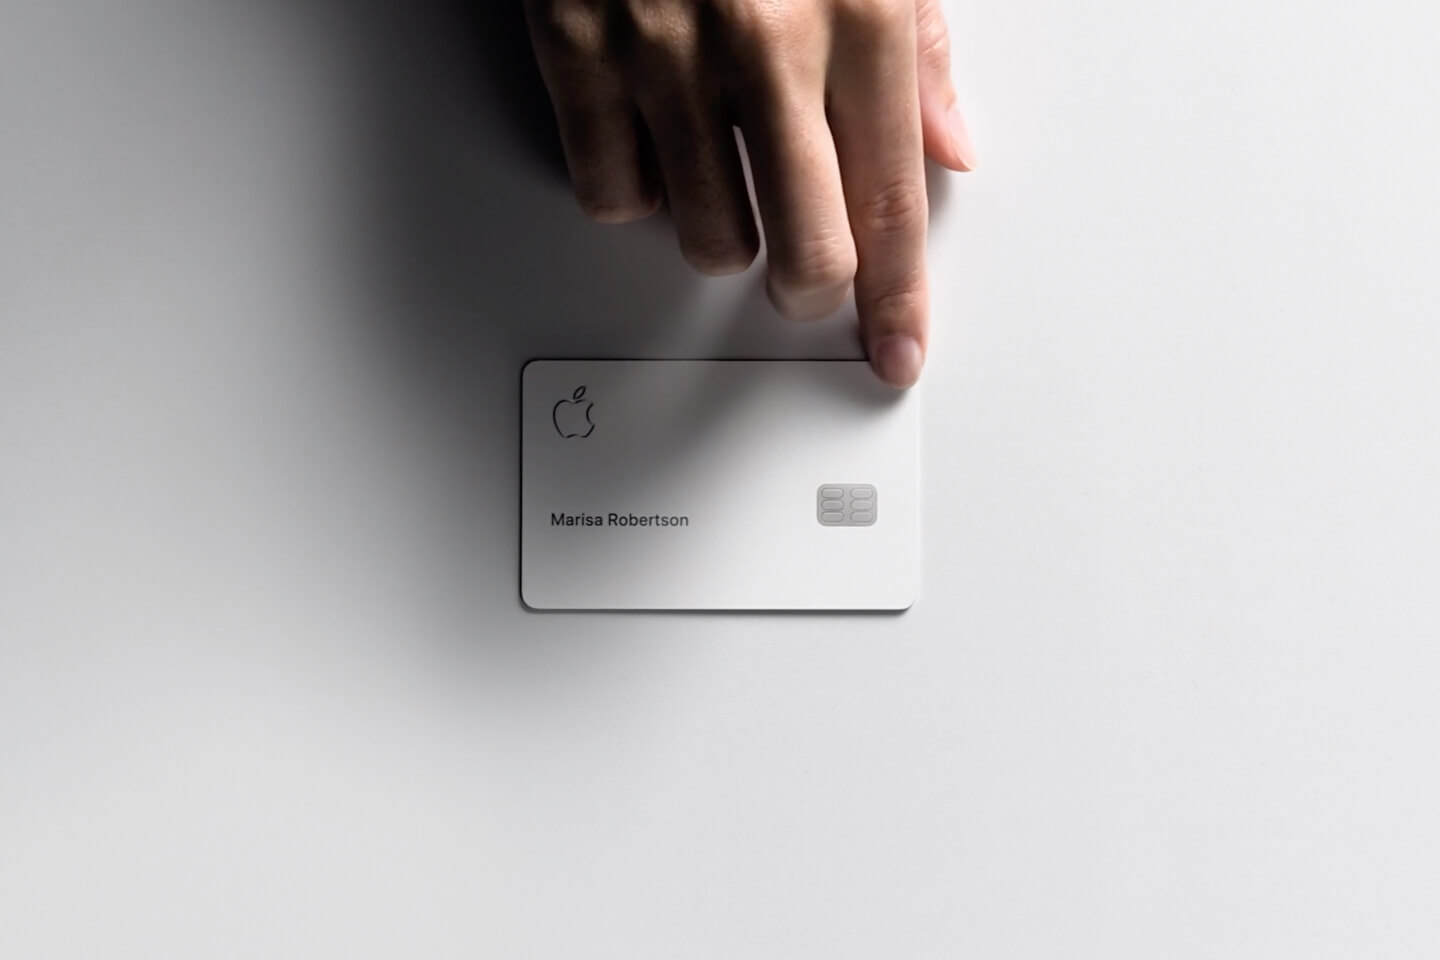 apple card explained